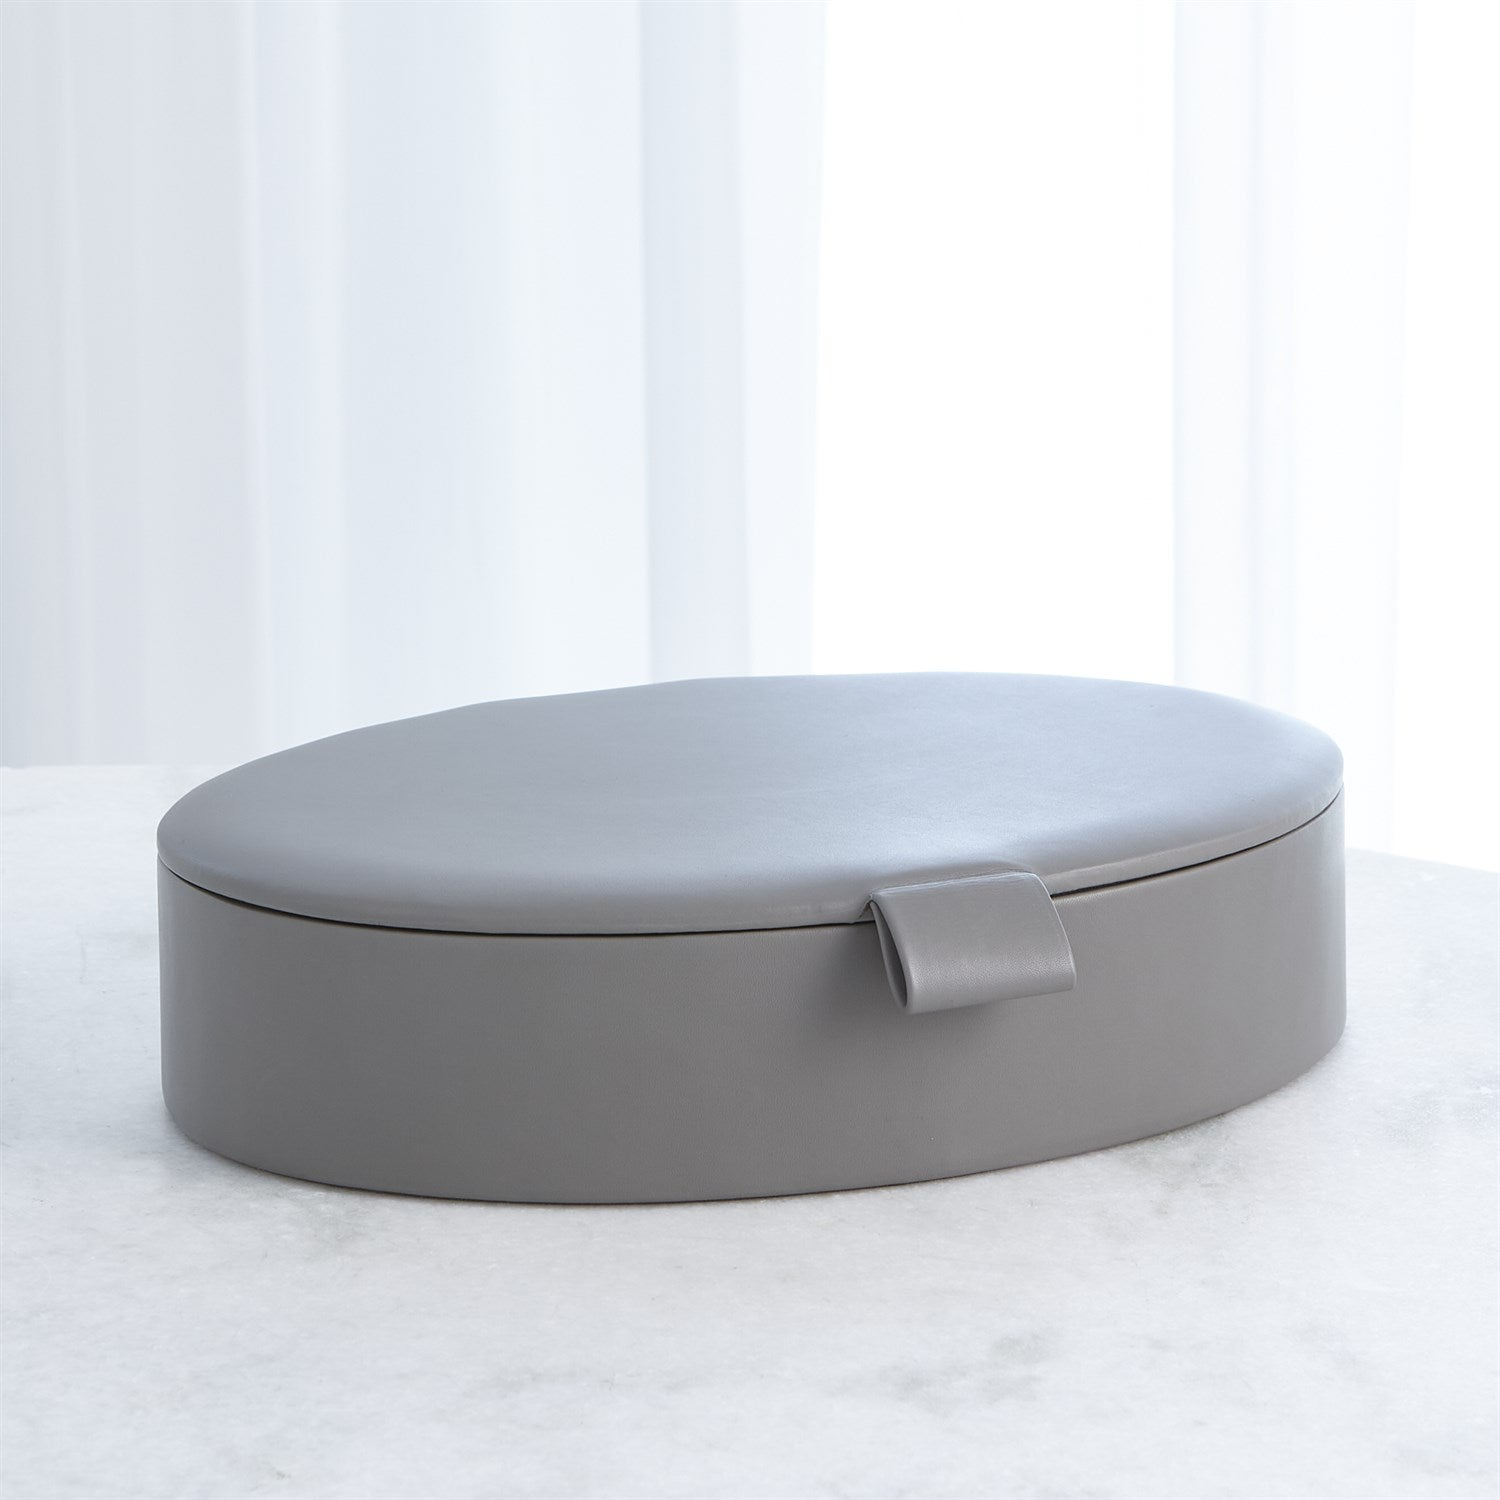 SIGNATURE OVAL LEATHER BOX | 2 SIZES